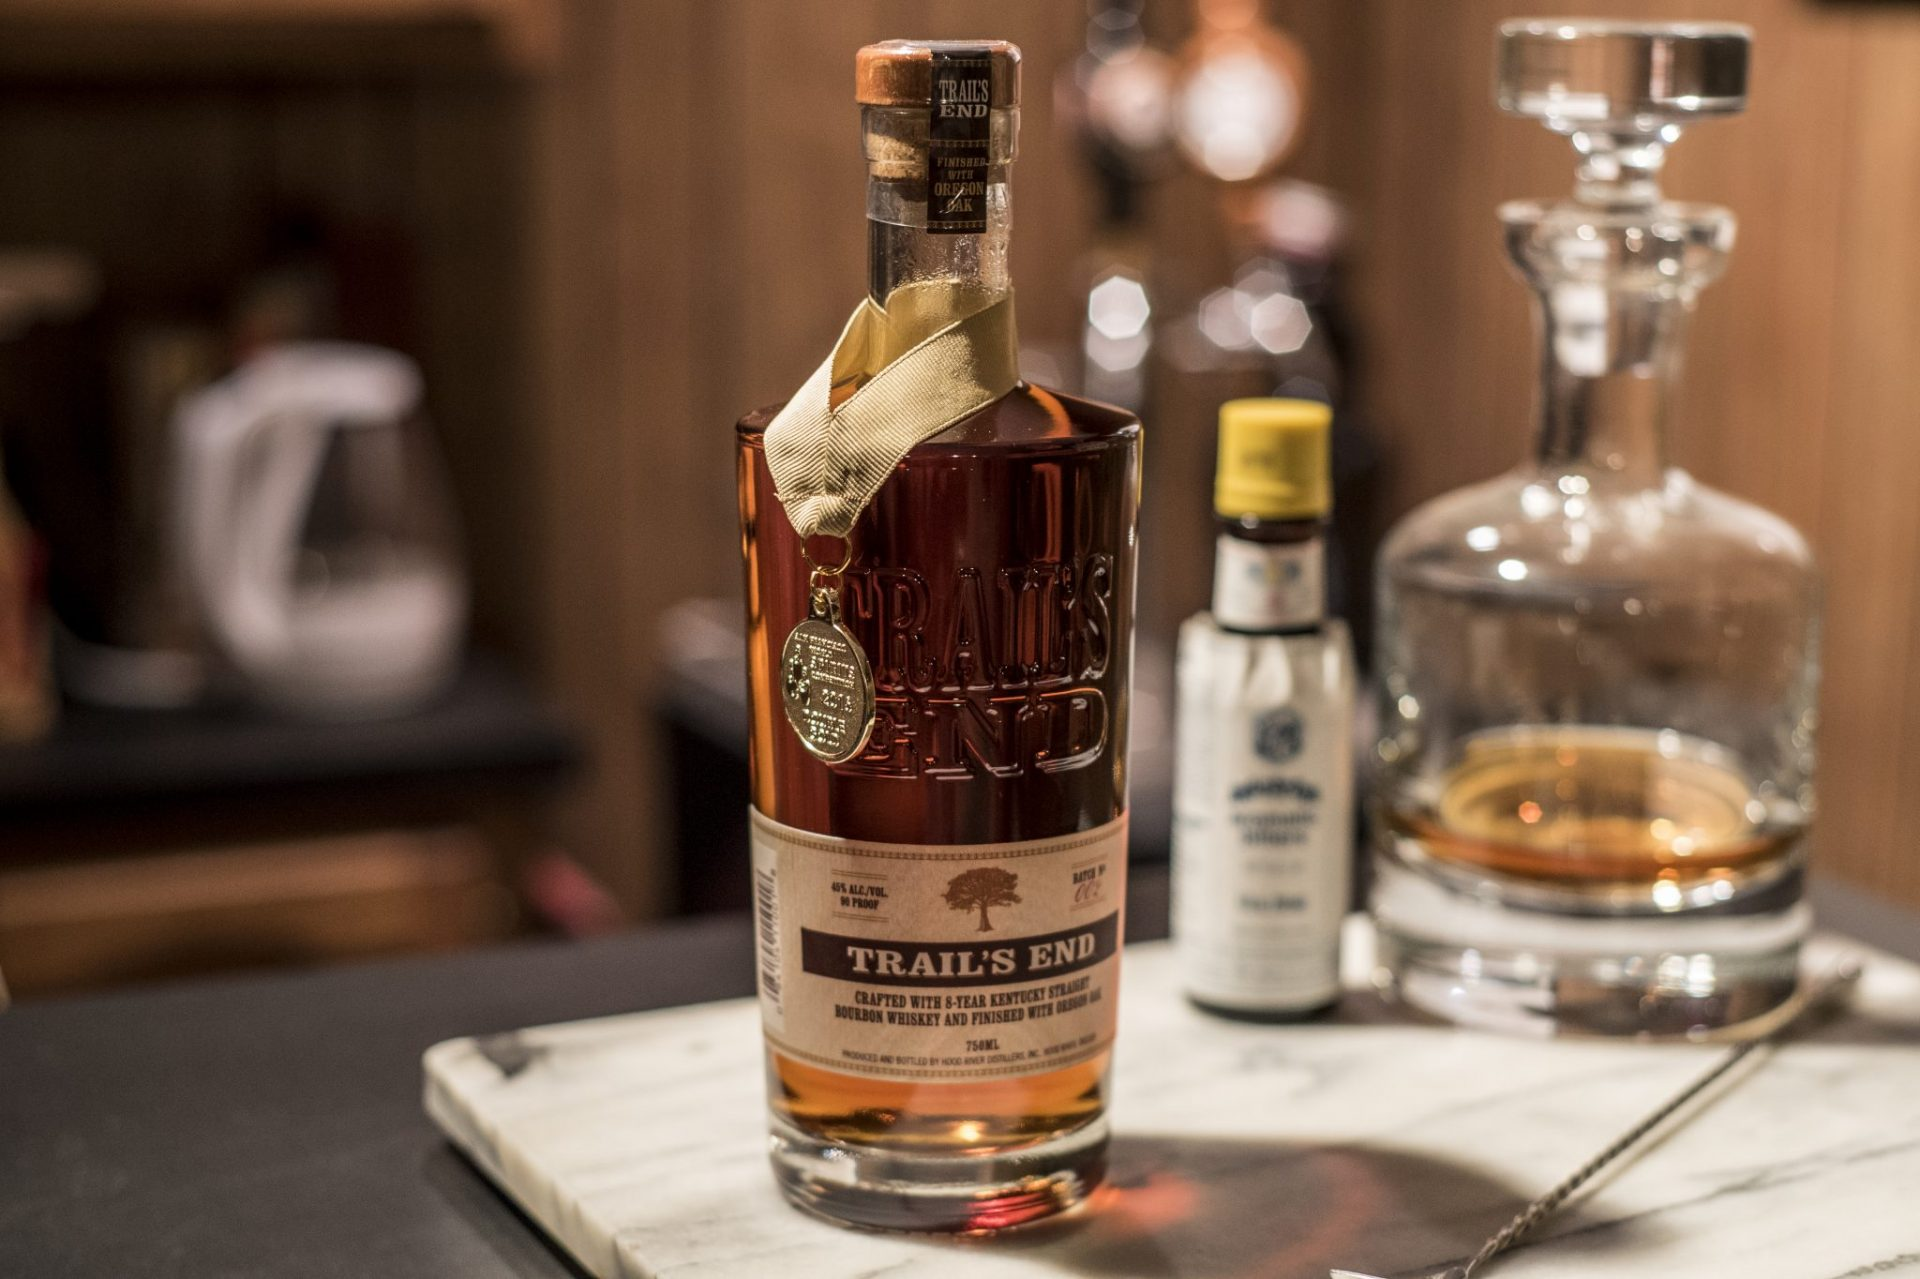 Review: Trail's End Bourbon 4